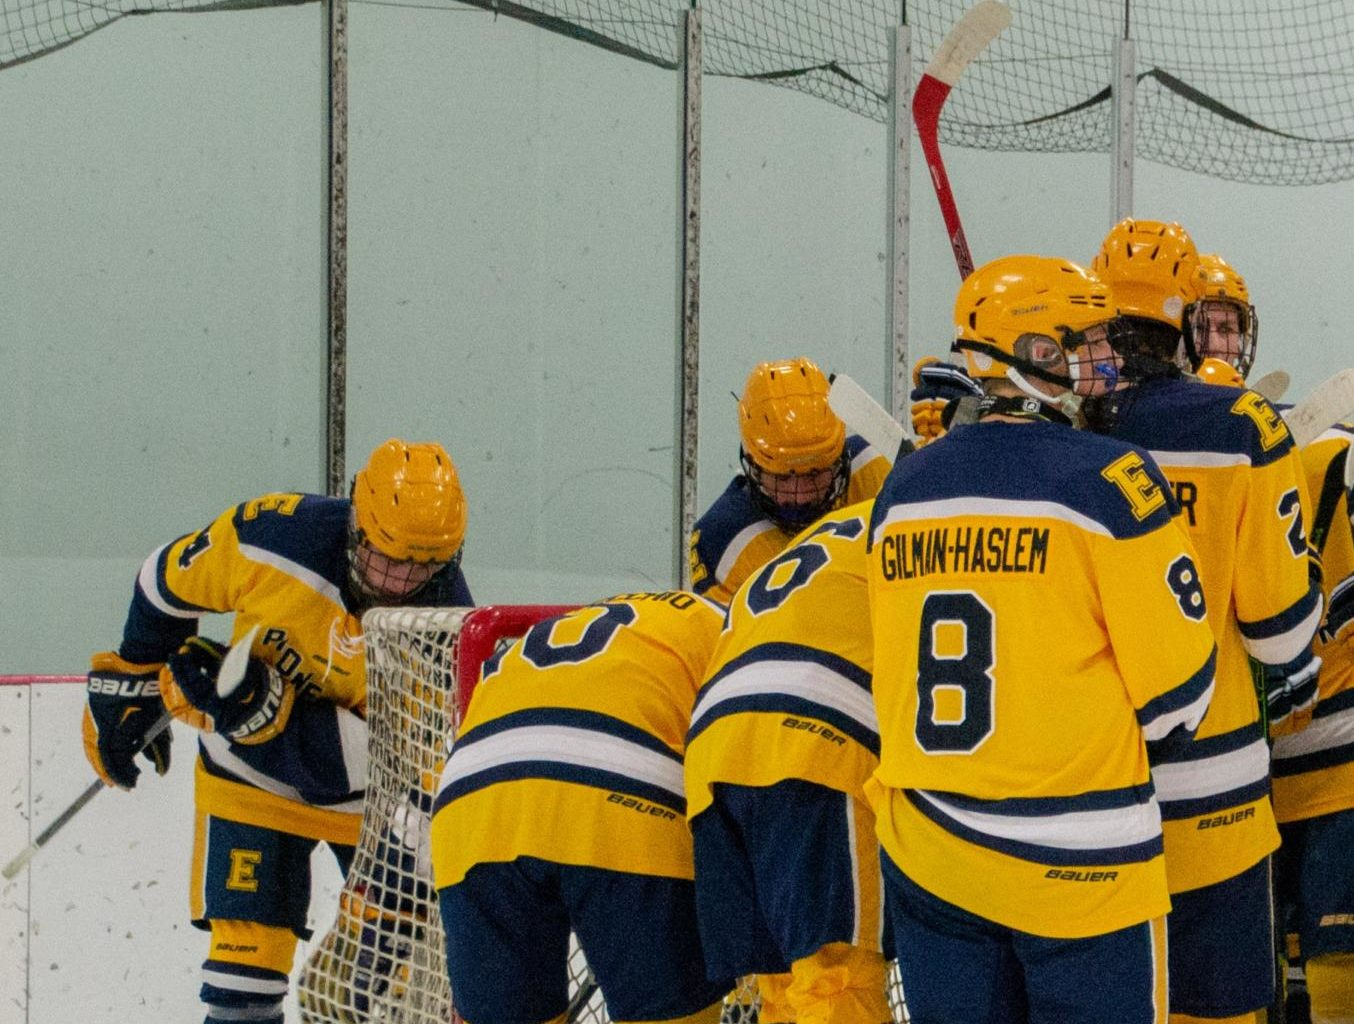 The boys hockey team gathers in a huddle at Patterson Ice Center during their first game of the season against Jenison high school.